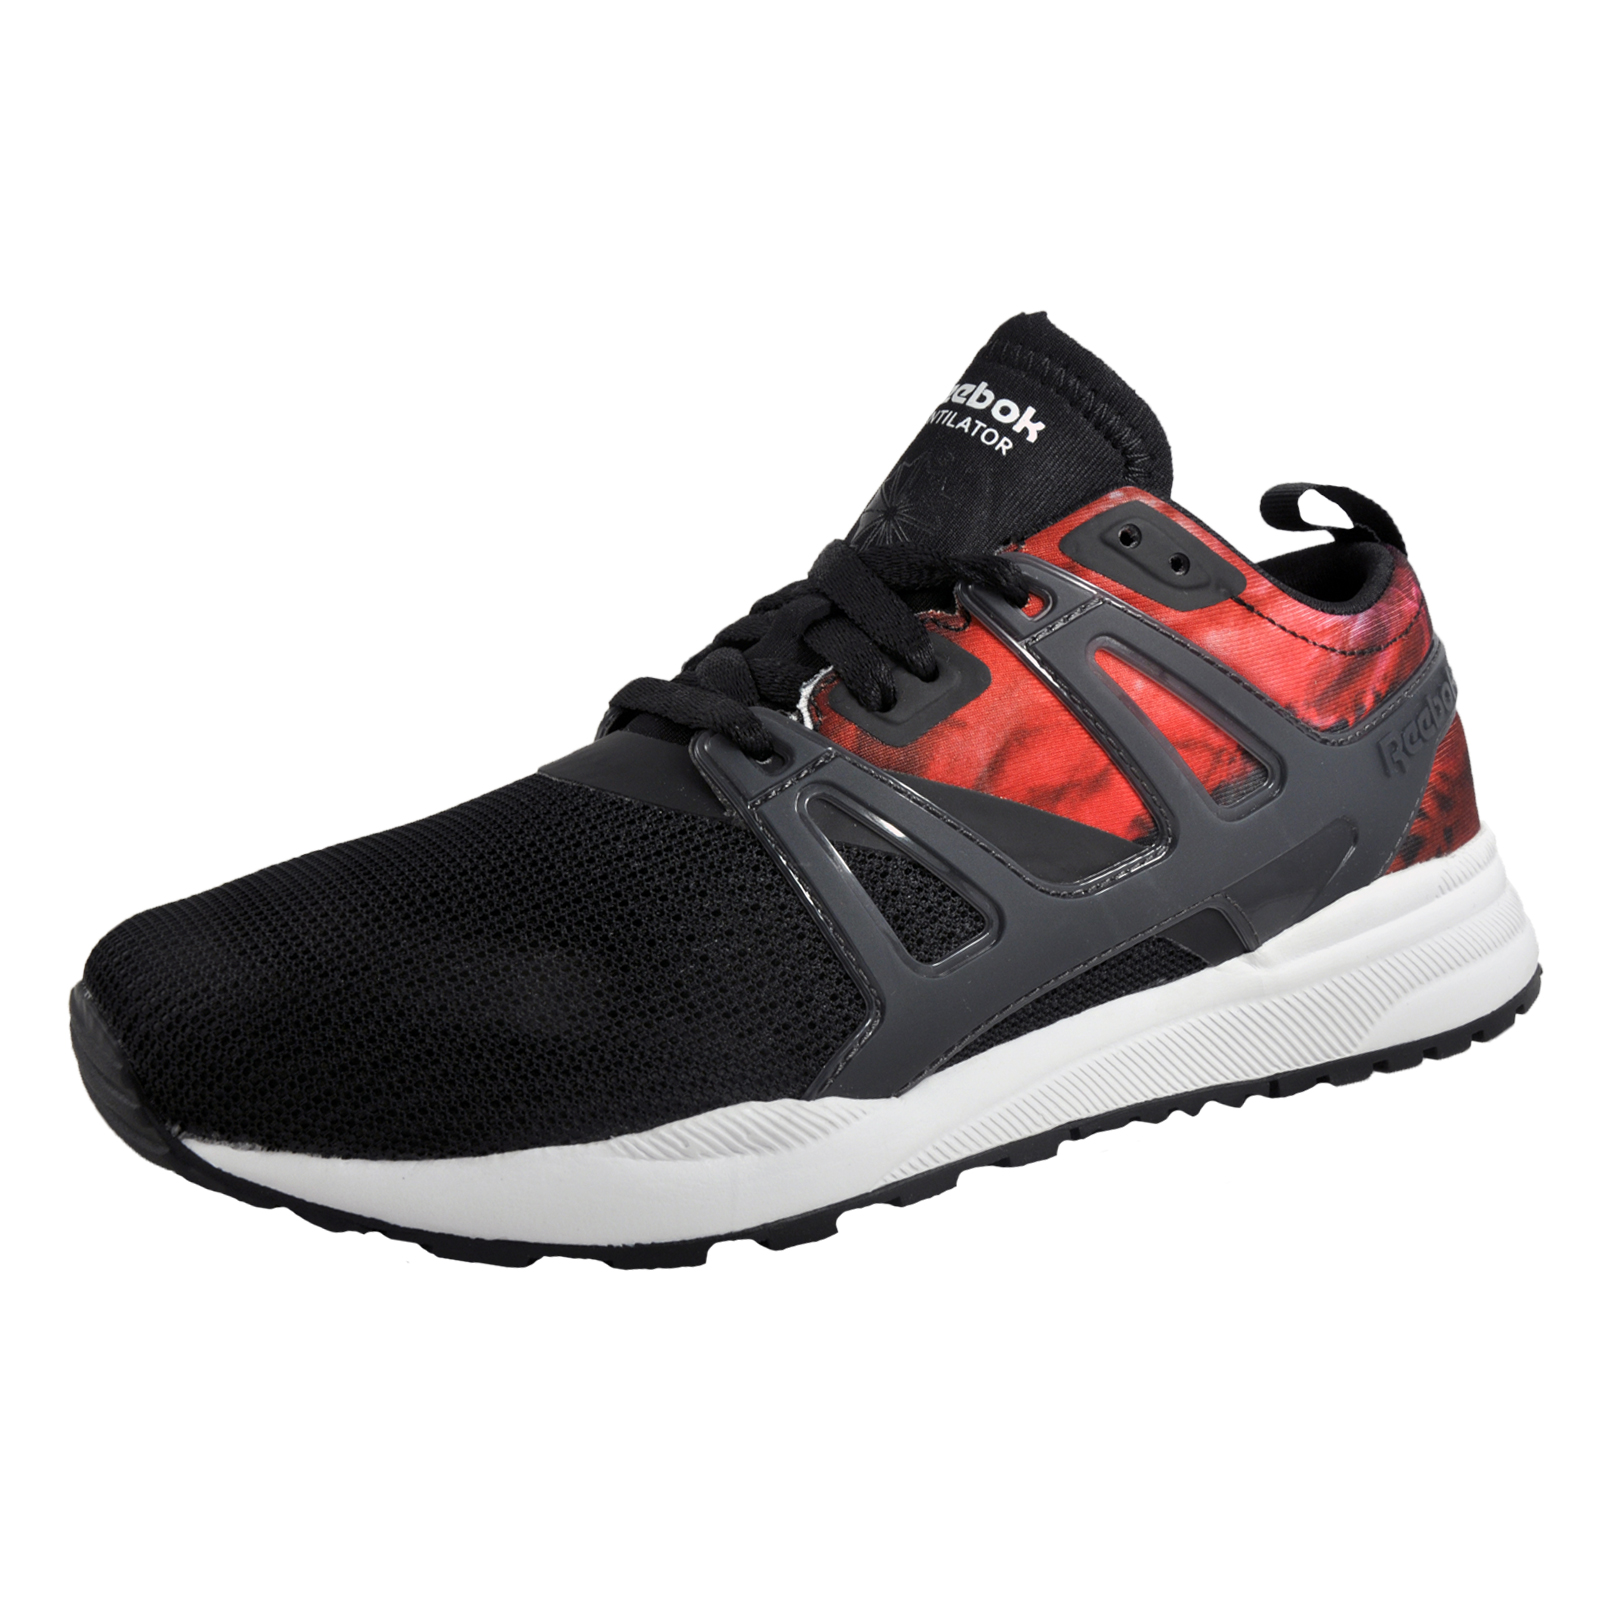 54650efb575860 Details about Reebok Ventilator Adapt Graphic Womens Classic Casual Retro  Black Trainers